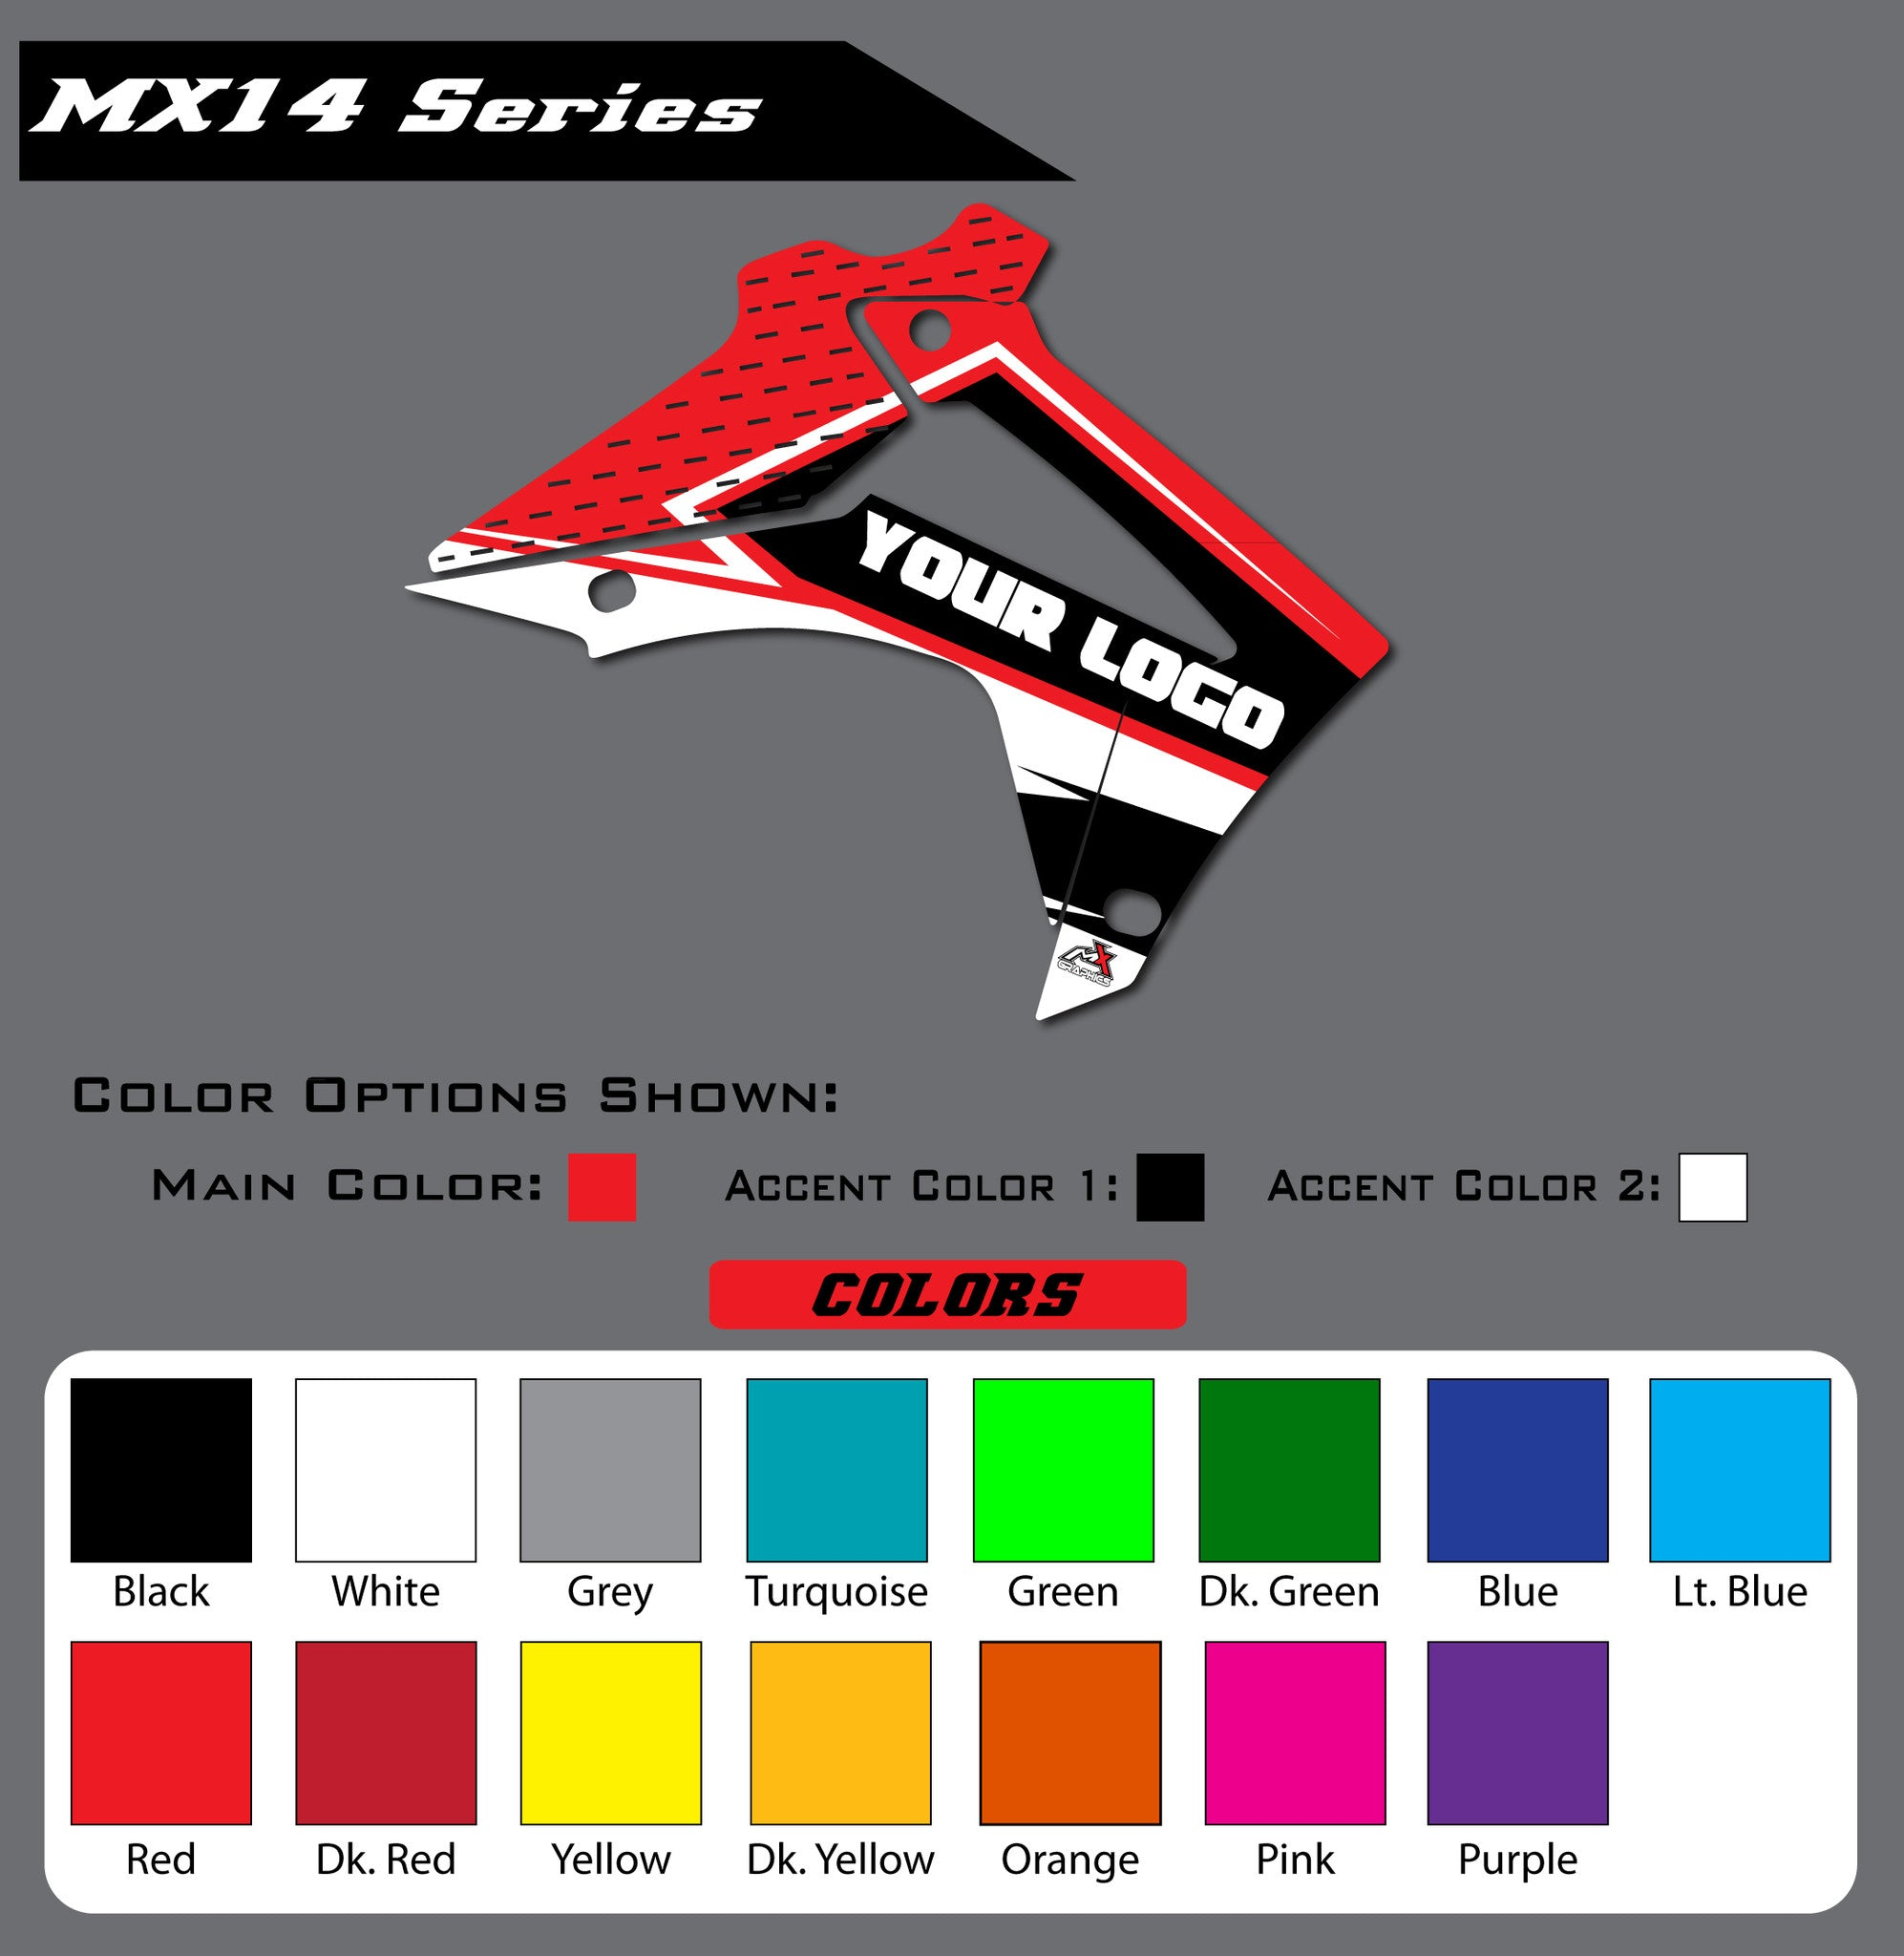 Honda MX14 Shroud Graphics